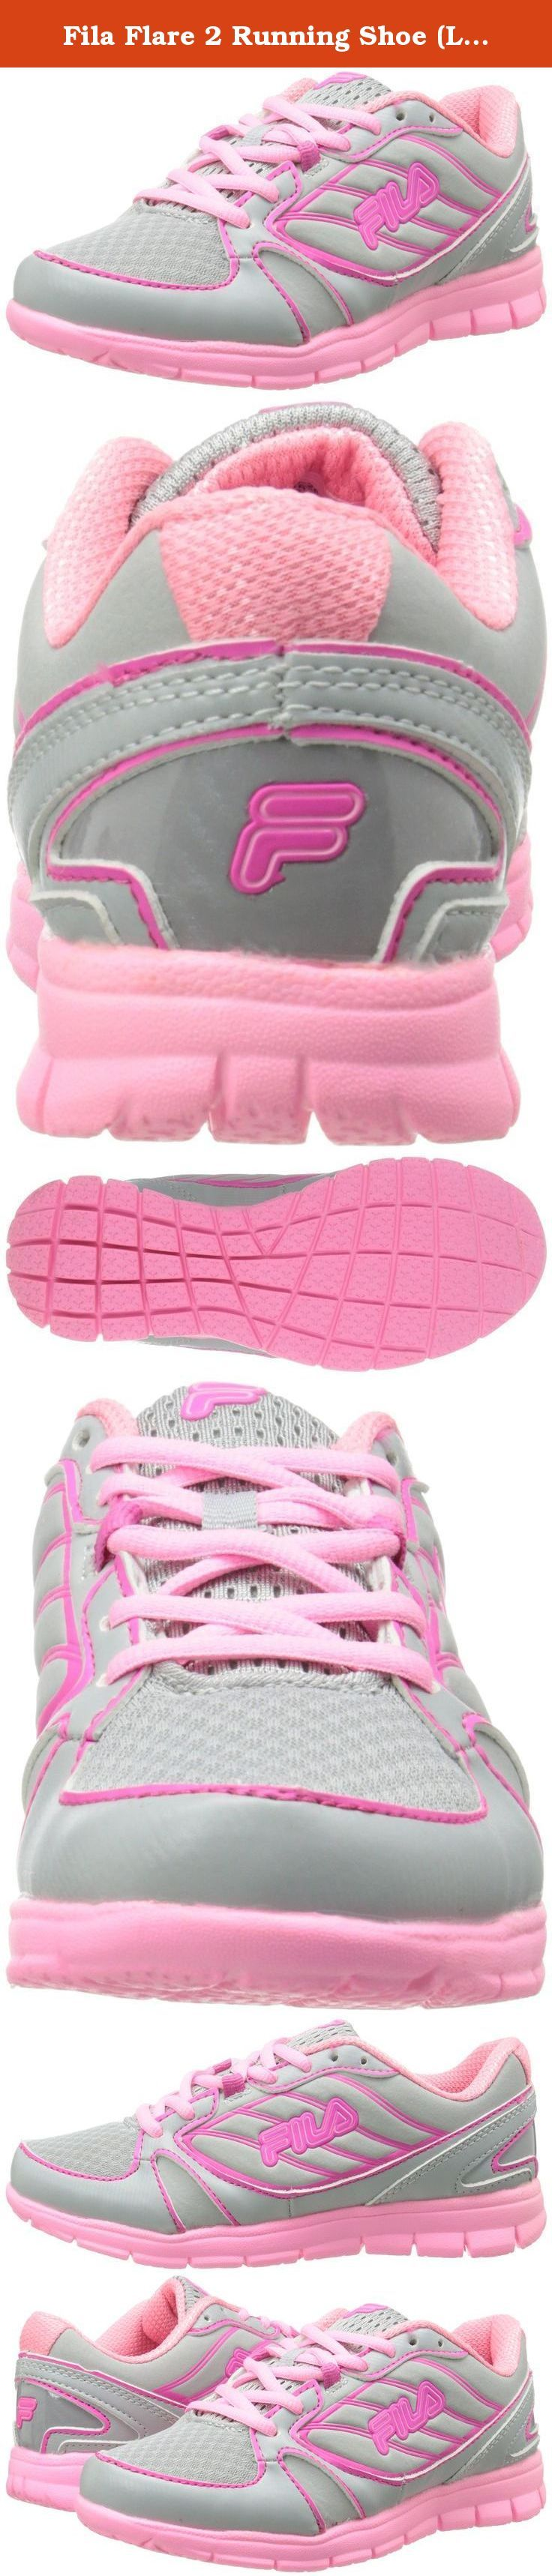 Fila Flare 2 Running Shoe (Little Kid/Big Kid), Hiris/Pink Glow/Cotton Candle, 2 M US Little Kid.